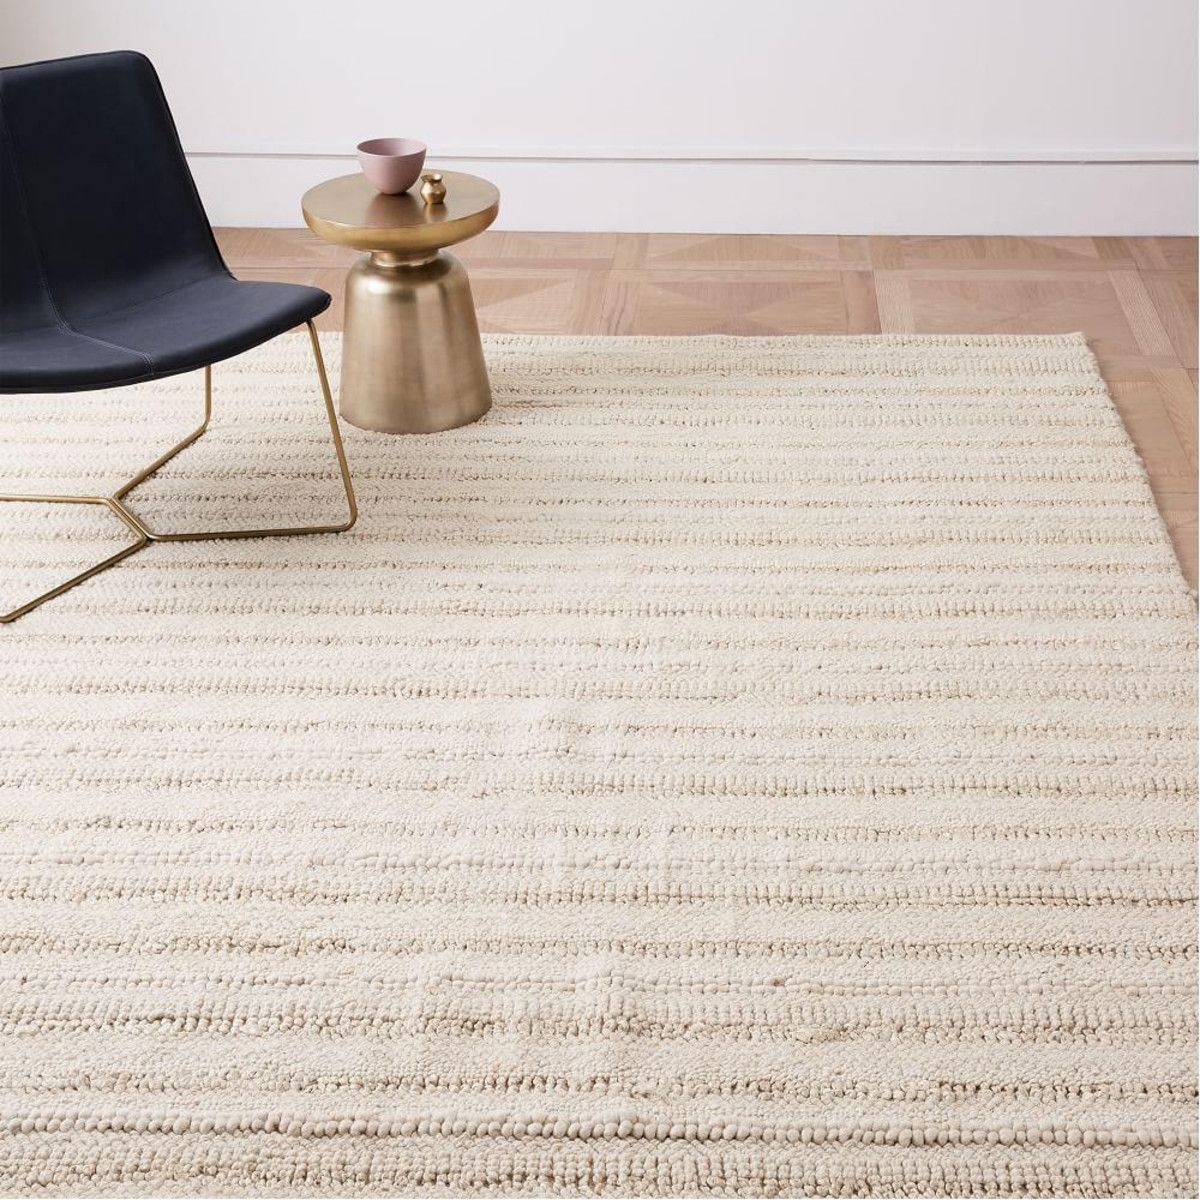 West Elm Stitched Mix Sweater Rug Ivory Rugs Home Rugs Cream Bedrooms